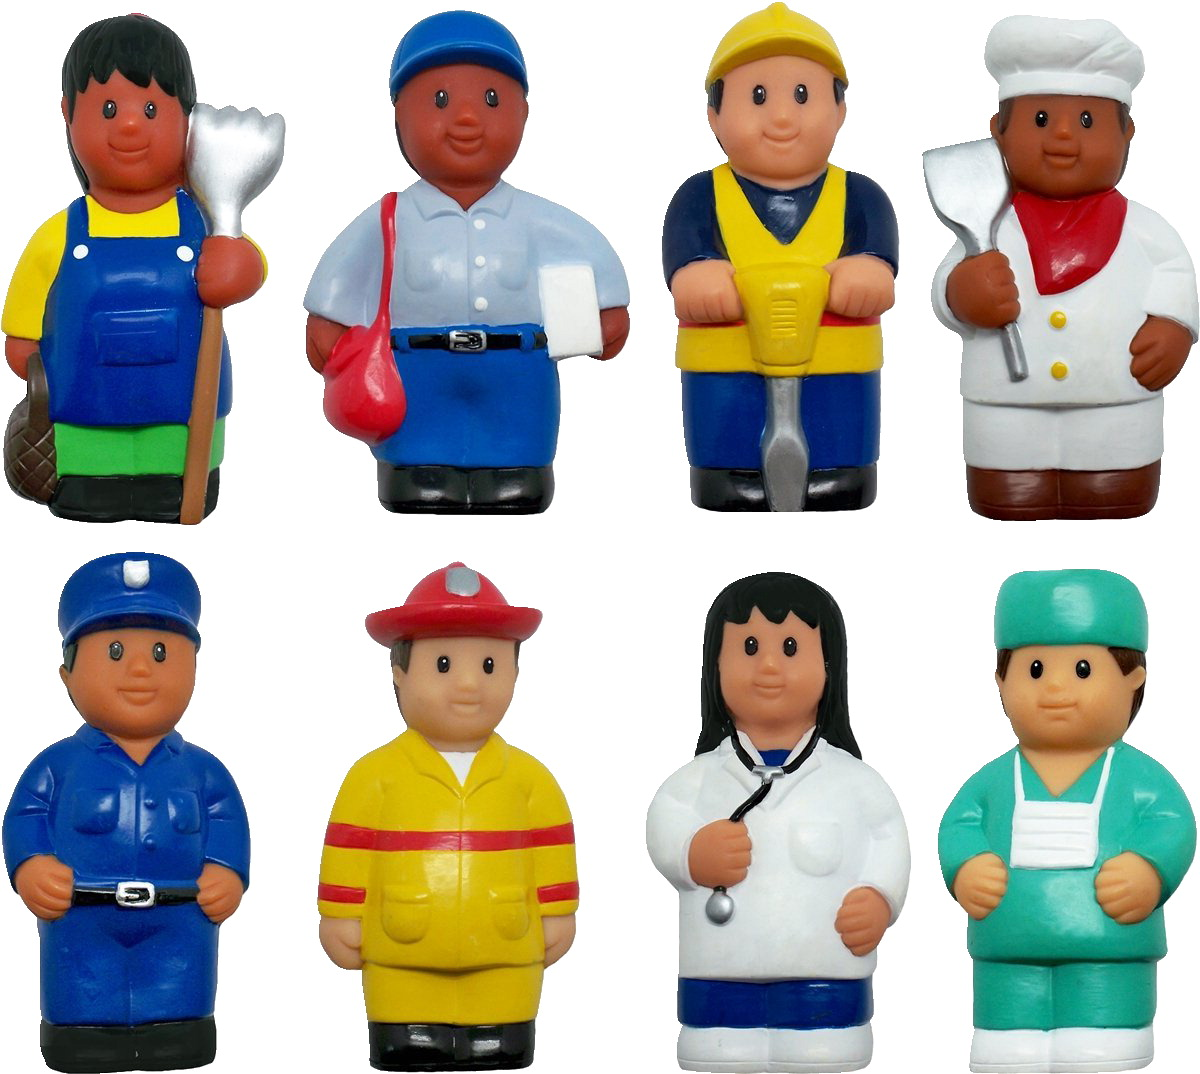 Get Ready Kids Career Figures, Multi-Ethnic, 5 Inches, Set of 8